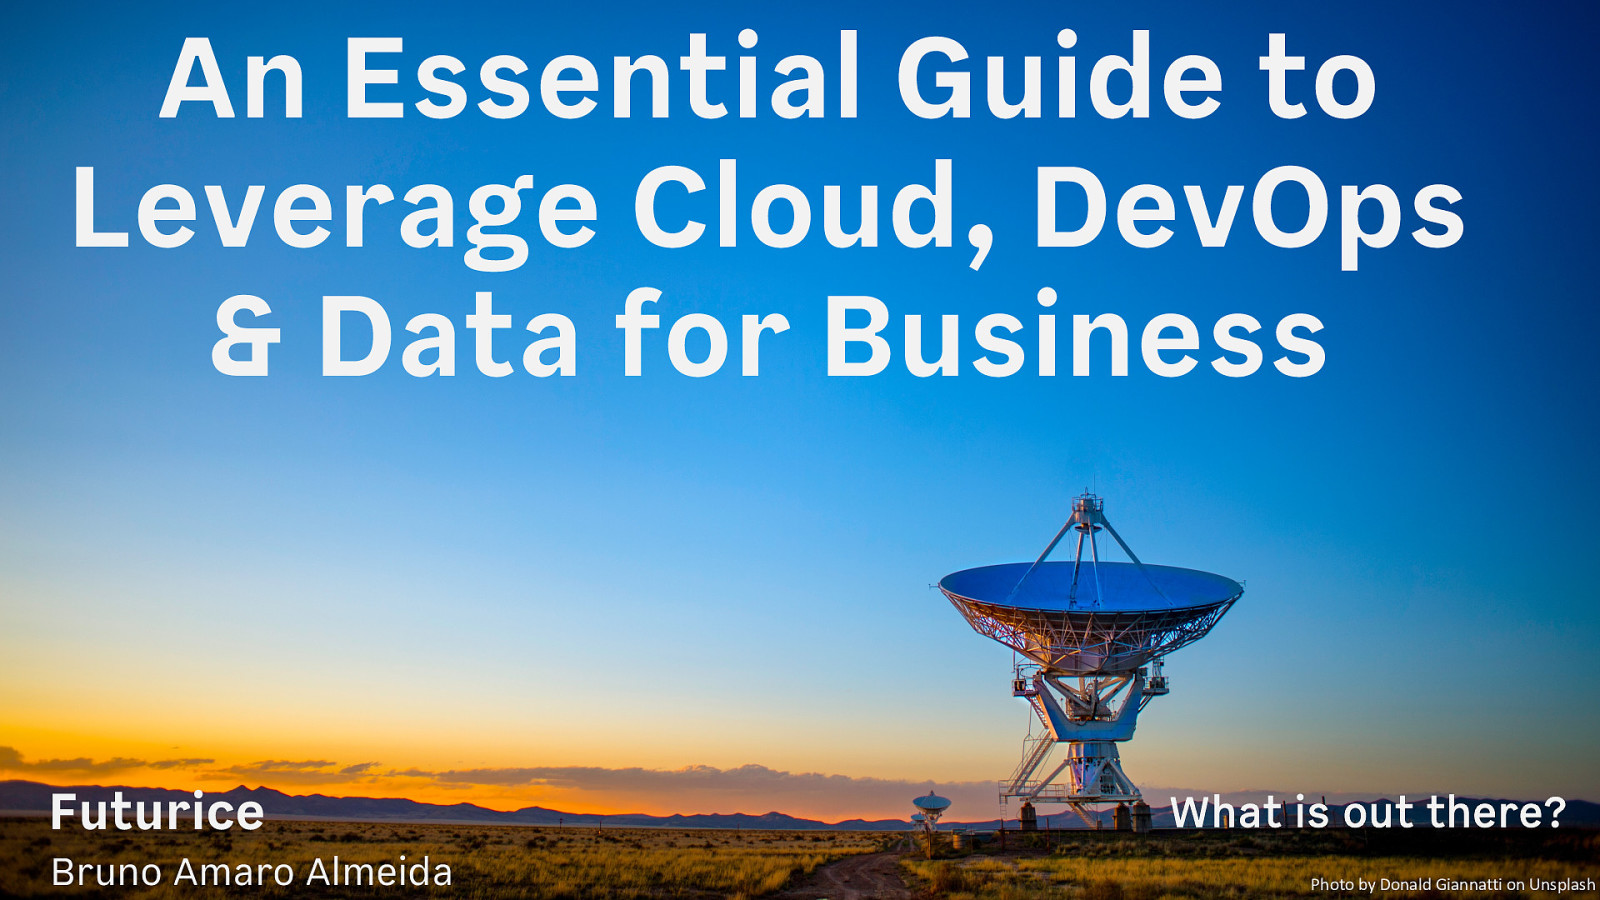 An Essential Guide to Leverage Cloud, DevOps & Data for Business